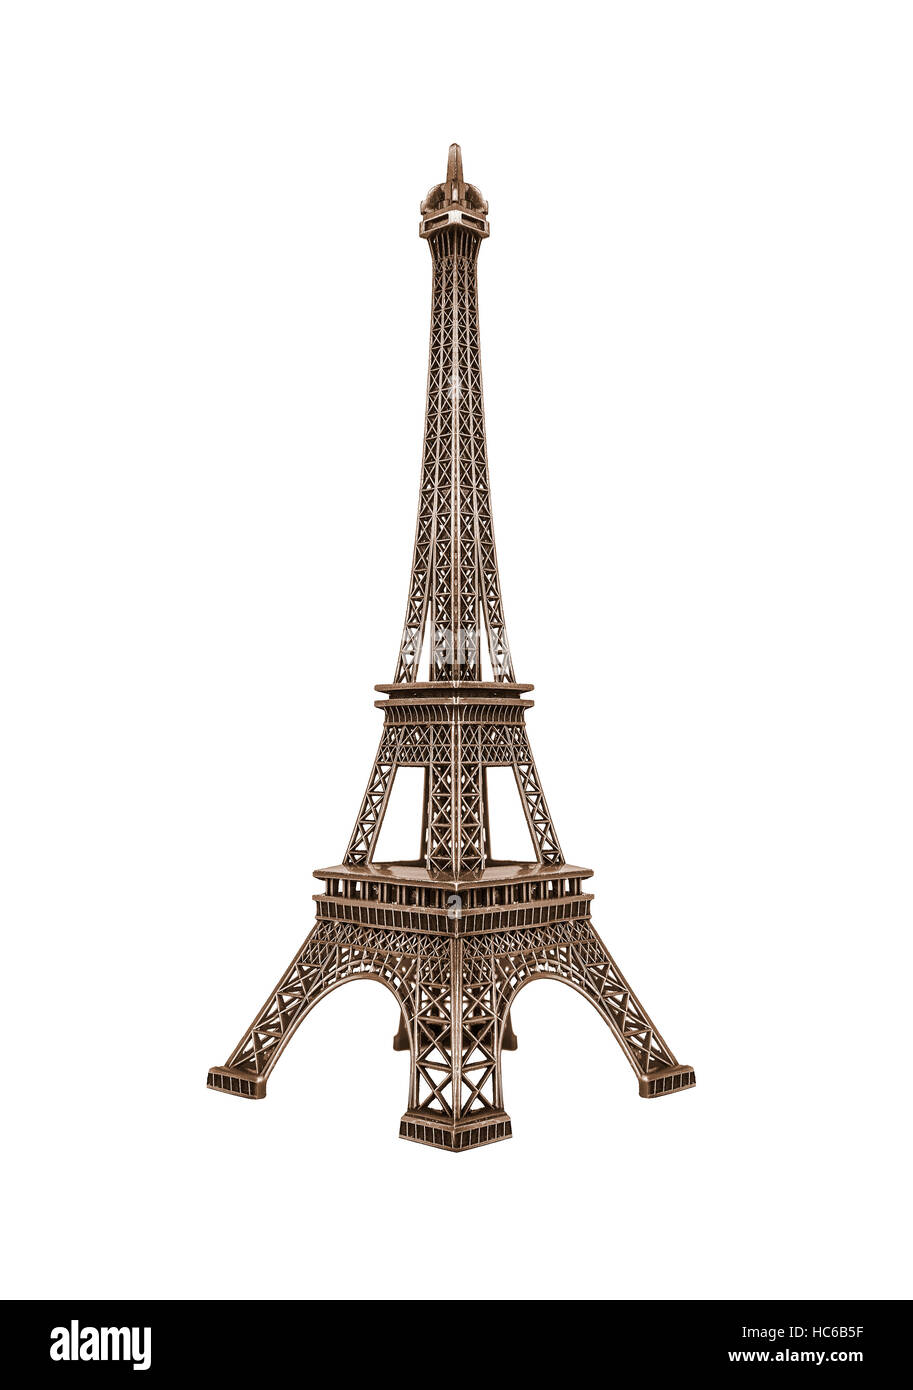 Eiffel tower isolated. - Stock Image